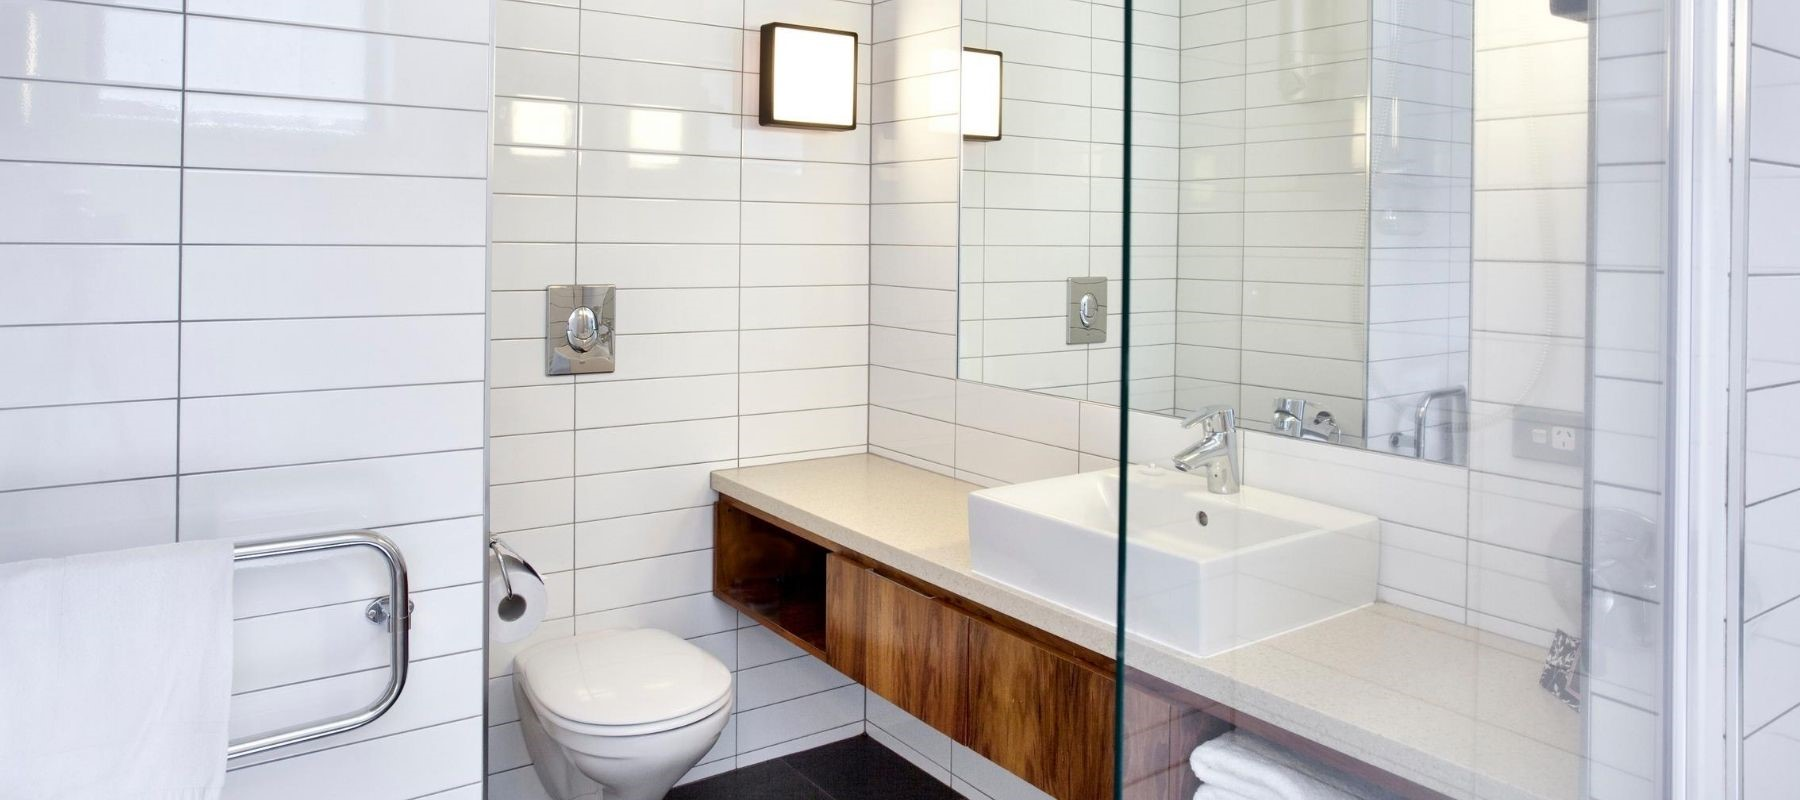 The white-tiled bathroom suite in the Milford Sound Lodge Riverside Chalet accommodation.